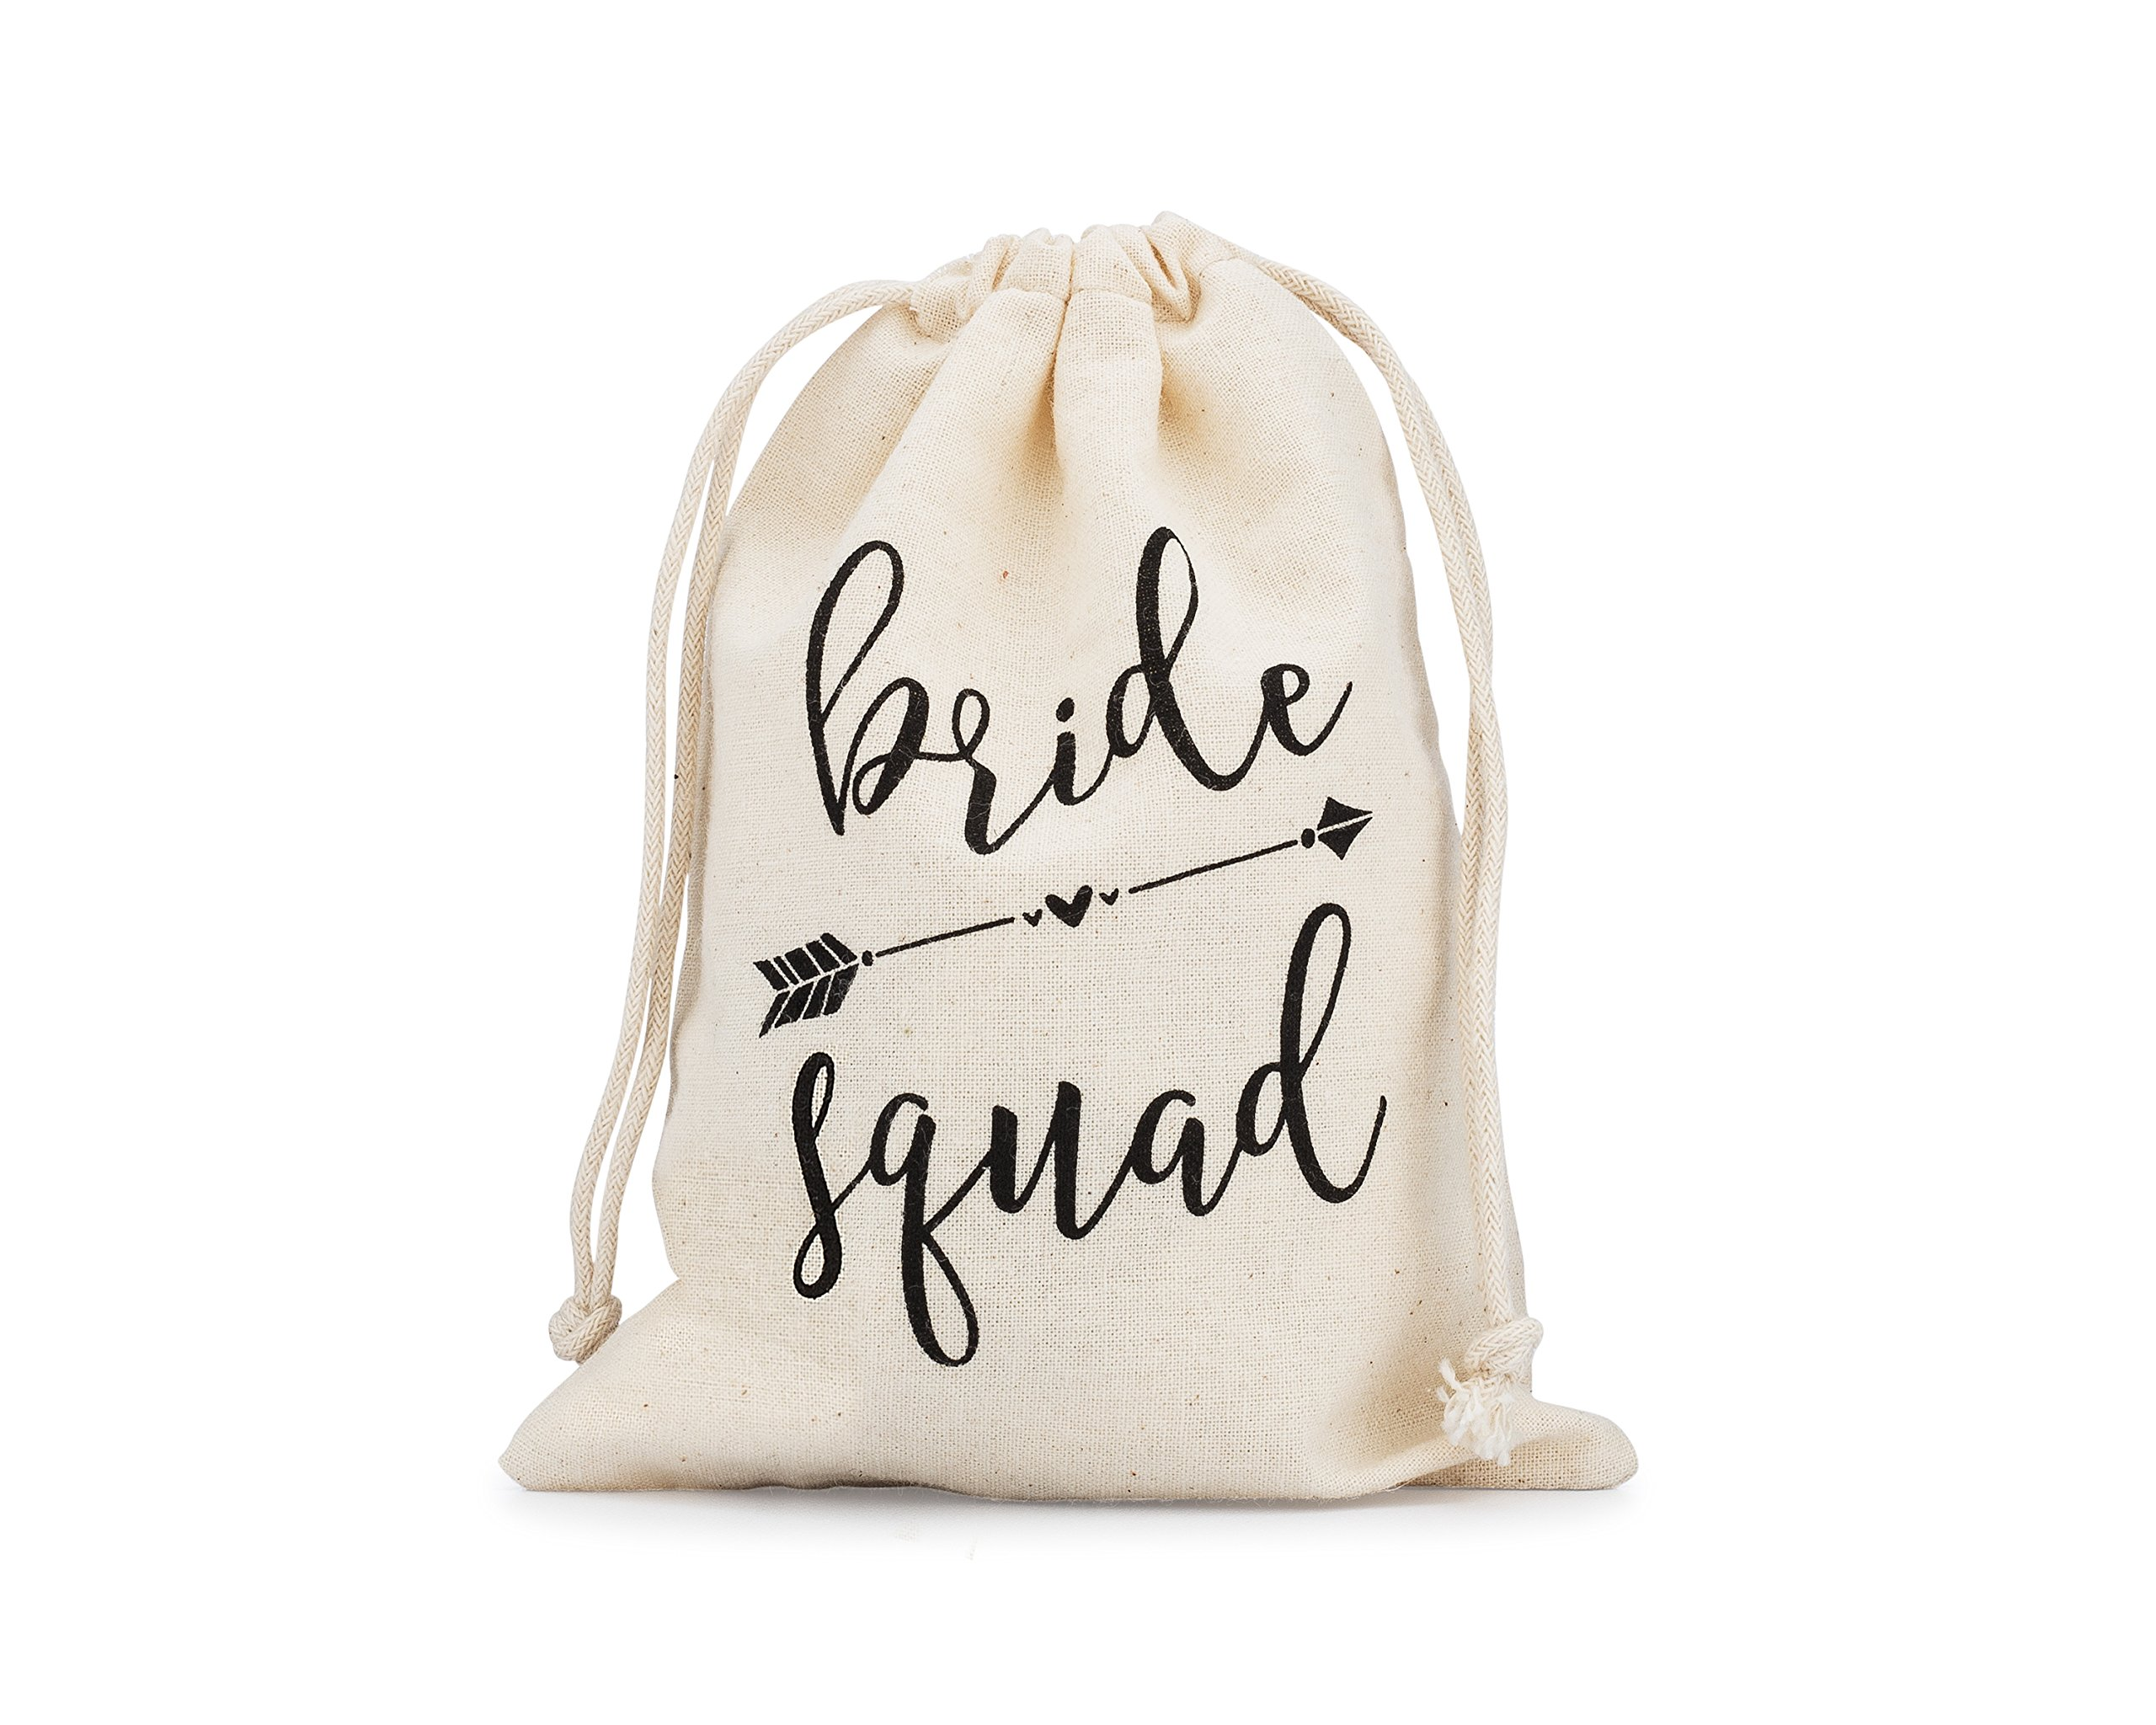 Fun Bride Squad Gift Bags 10 pcs 5'' x 7'' Survival Kit Bachelorette Party Wedding Party Favor Gift Recovery Kit Hen Party Girls Night Out Bridal Gifts Bridesmaids Gifts